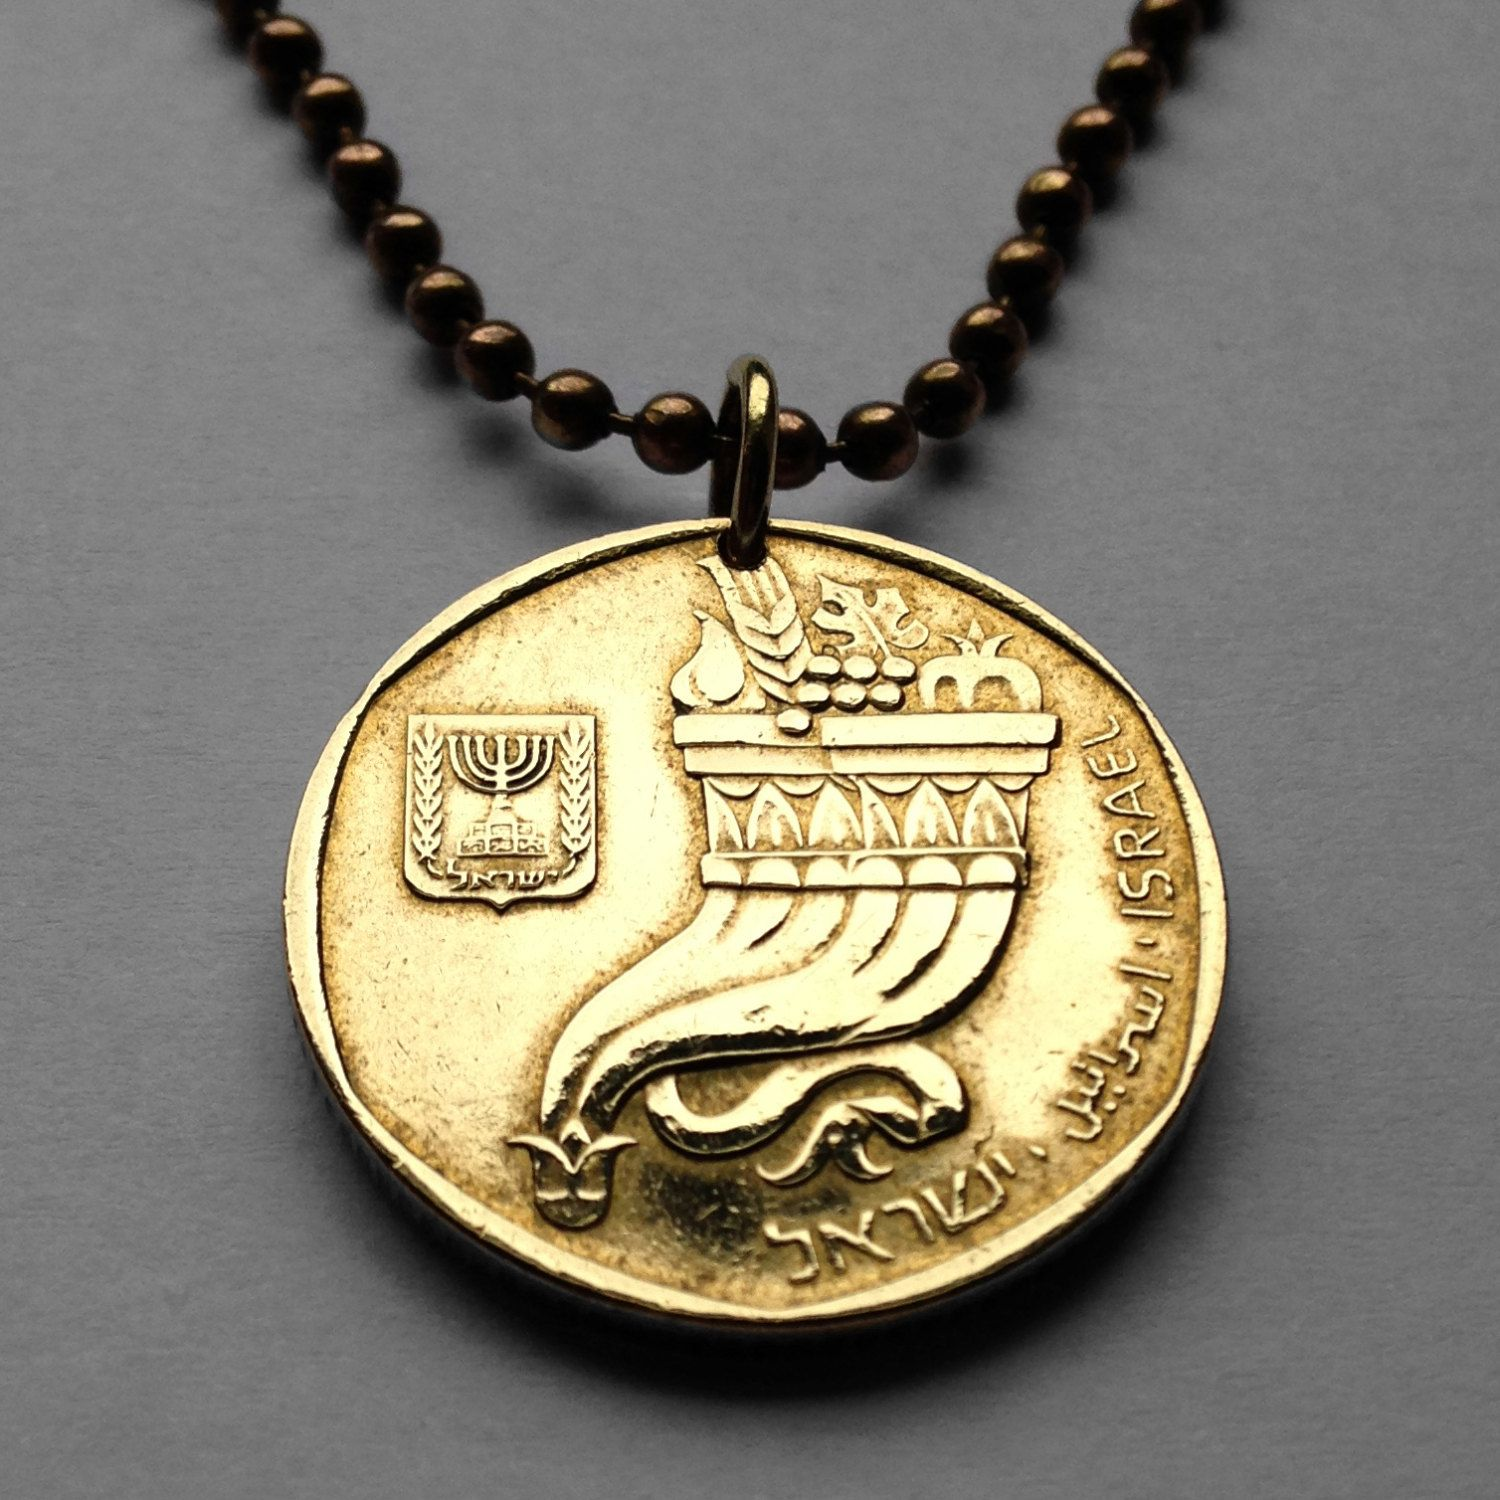 1984 Israel 5 Sheqalim coin pendant Jewish cornucopia horn of plenty Hebrew gold MENORAH Torah Judea necklace Jerusalem Judaism Zion n001704 by coinedJEWELRY on Etsy